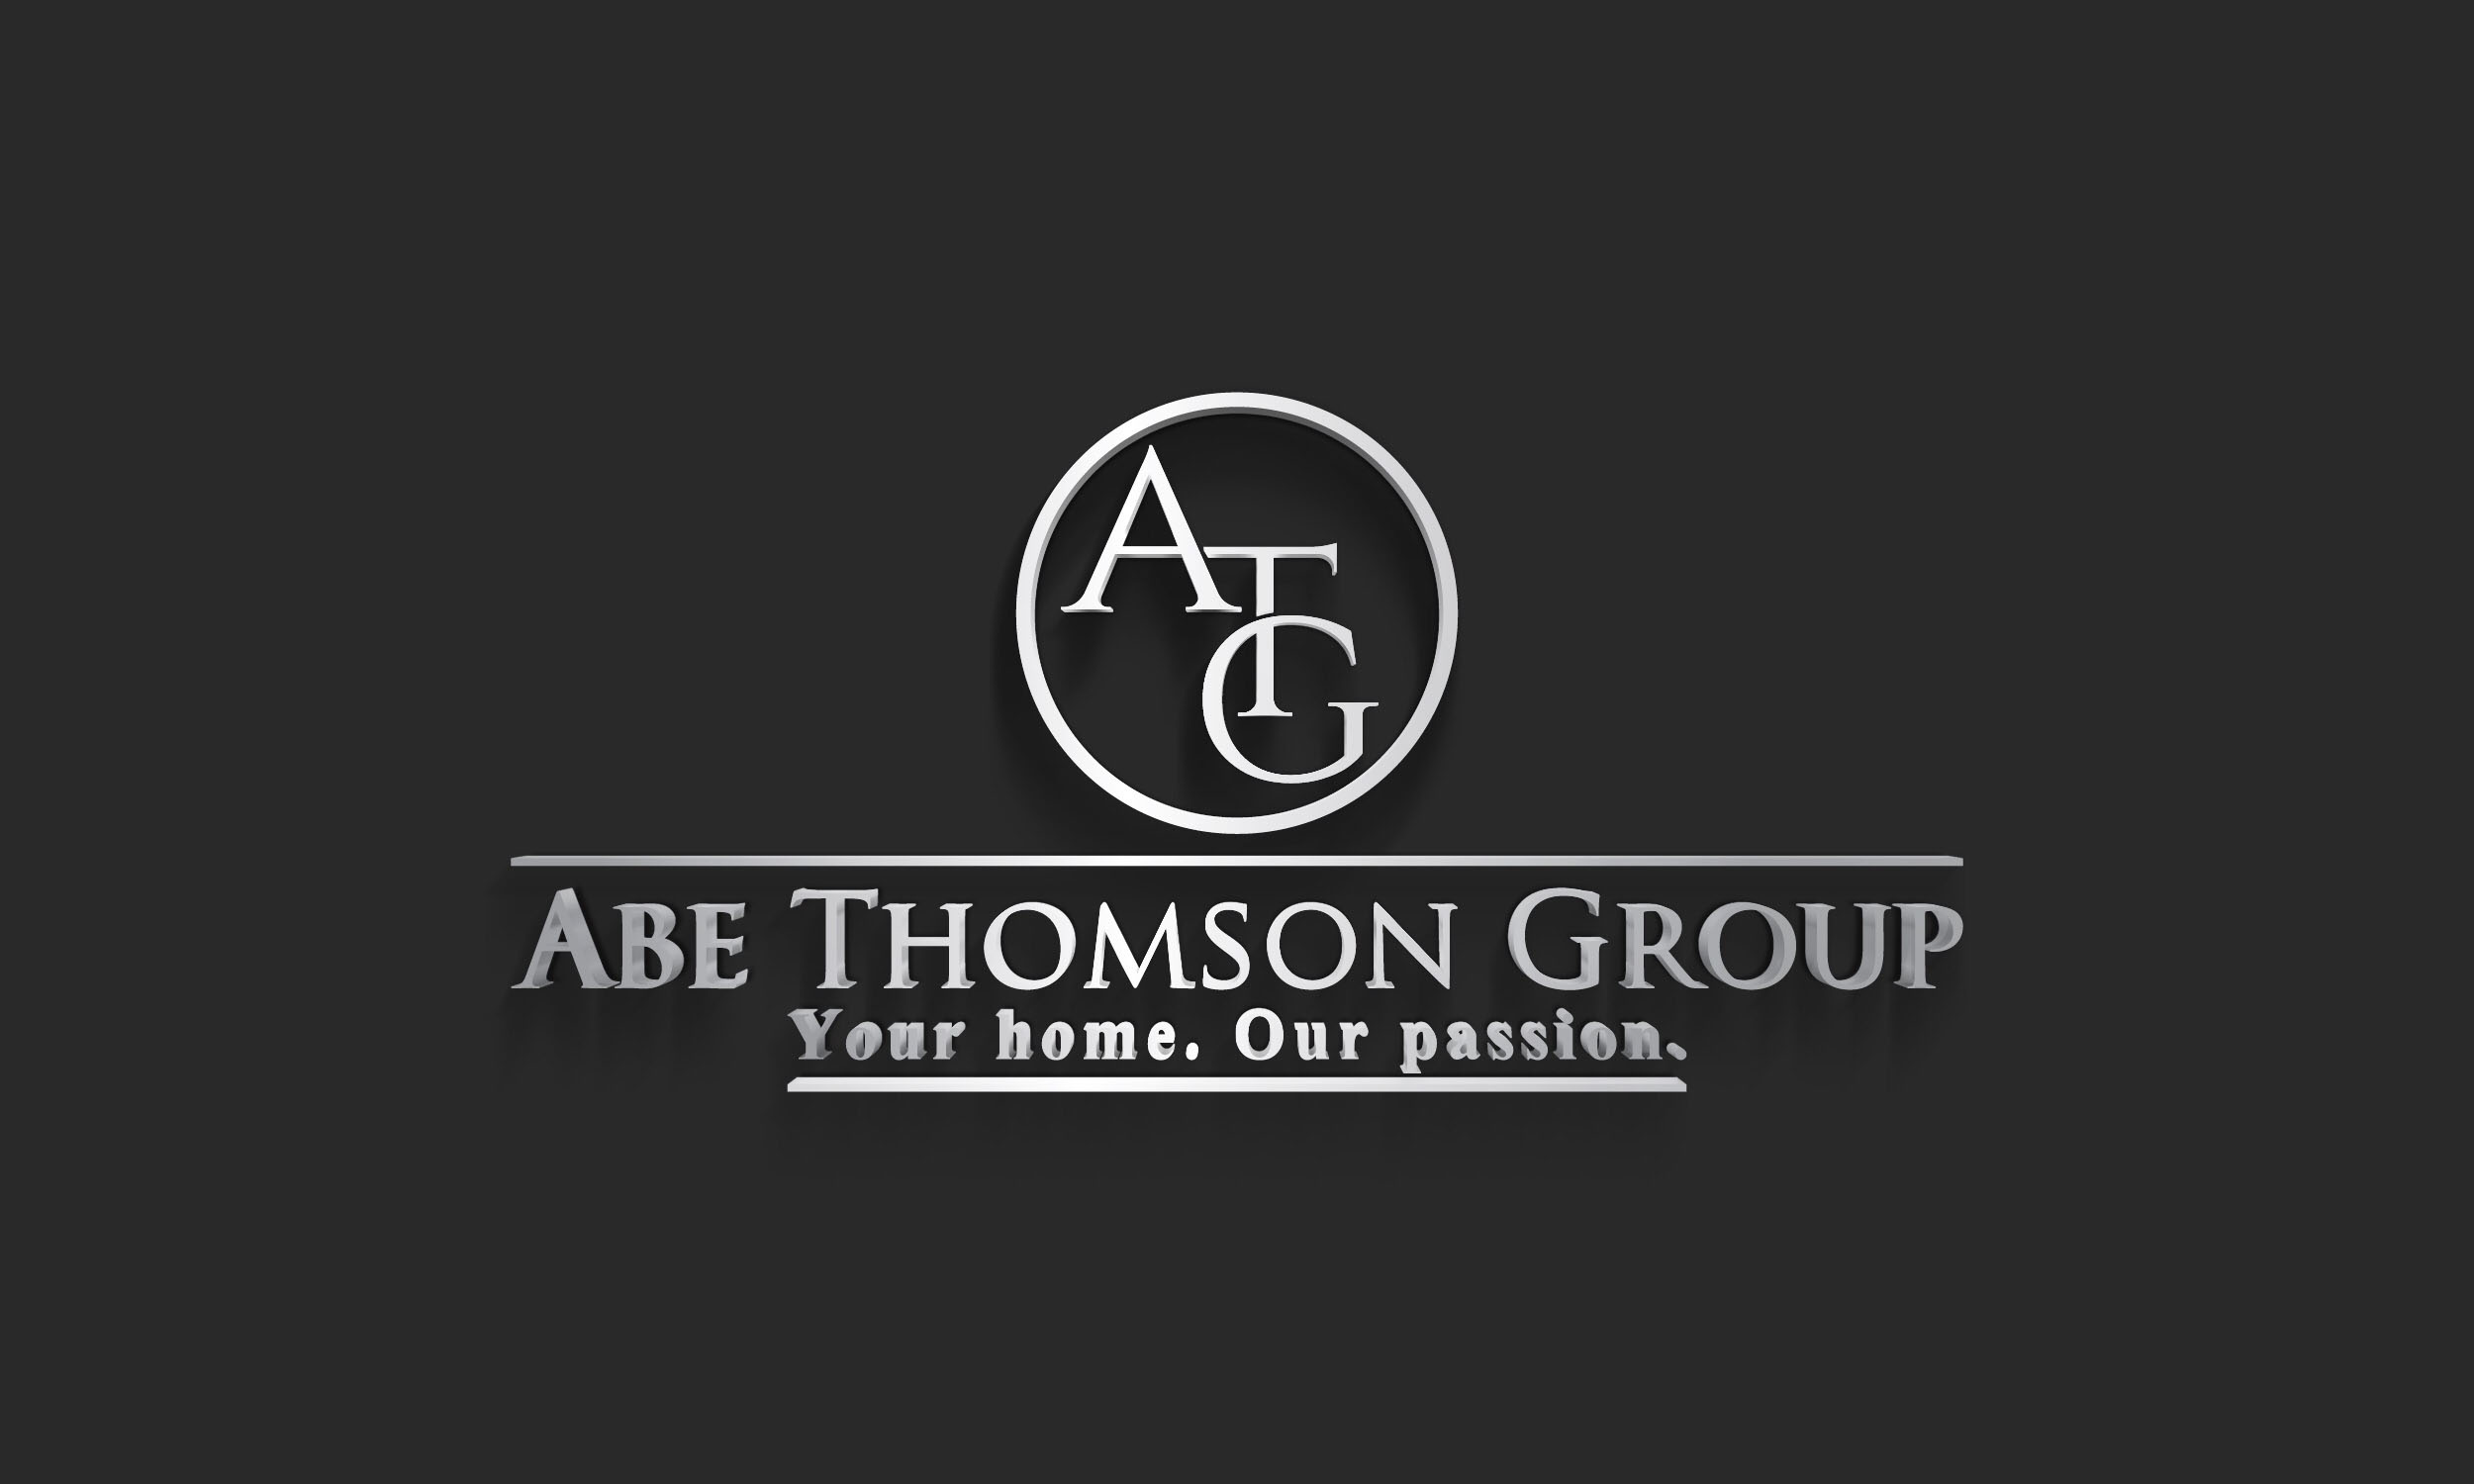 Abe Thomson Group